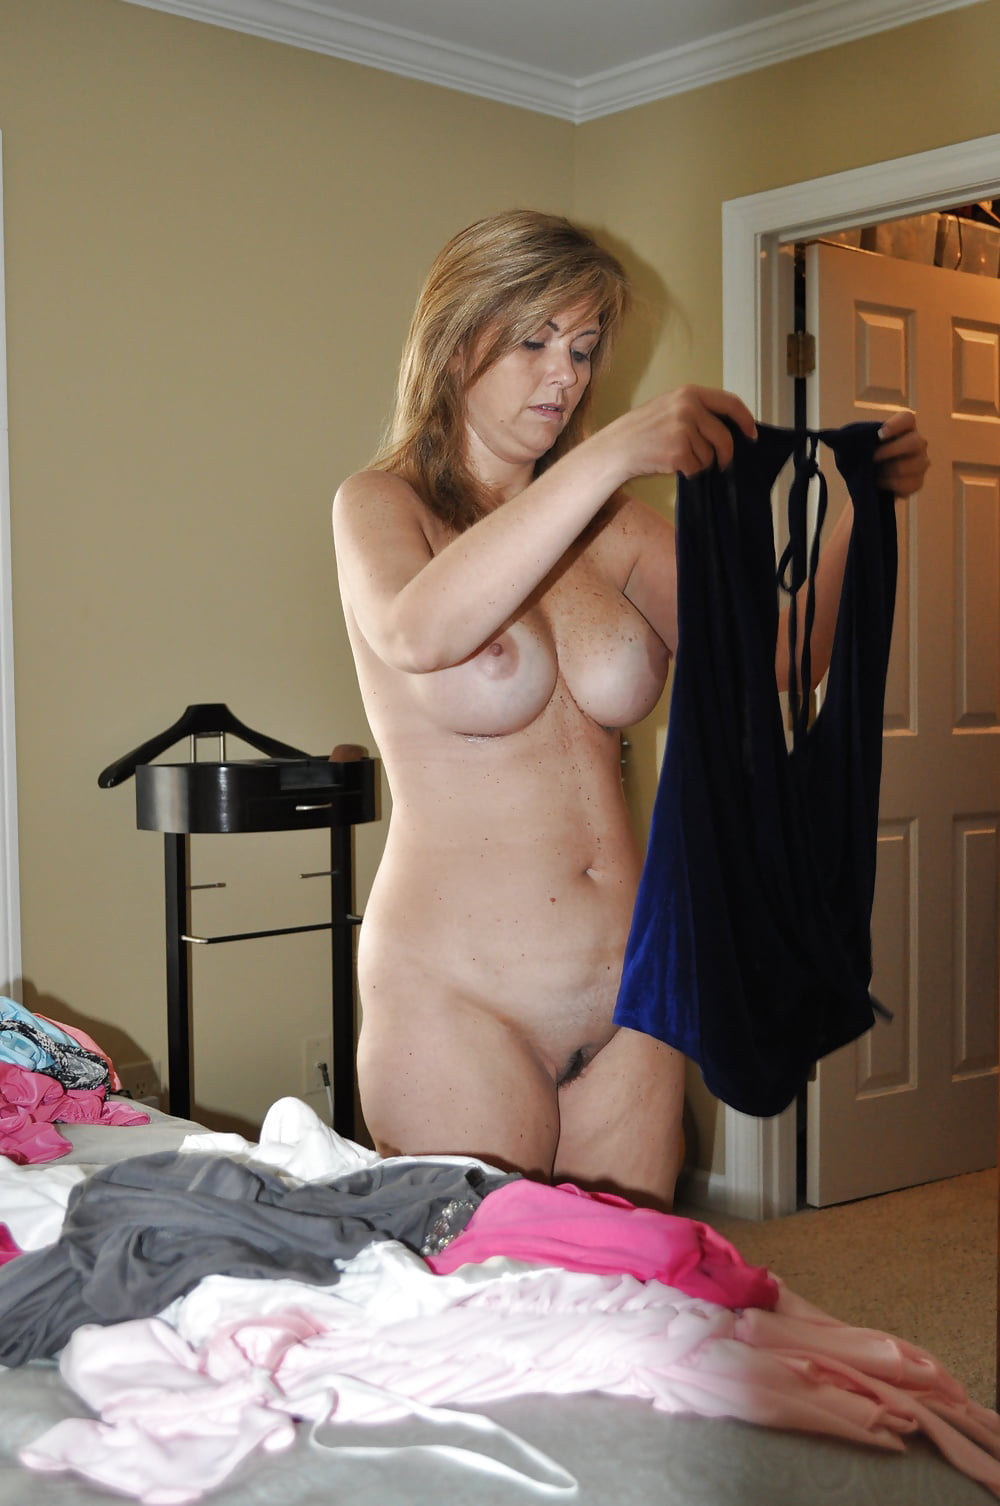 Girls with milf freckled with